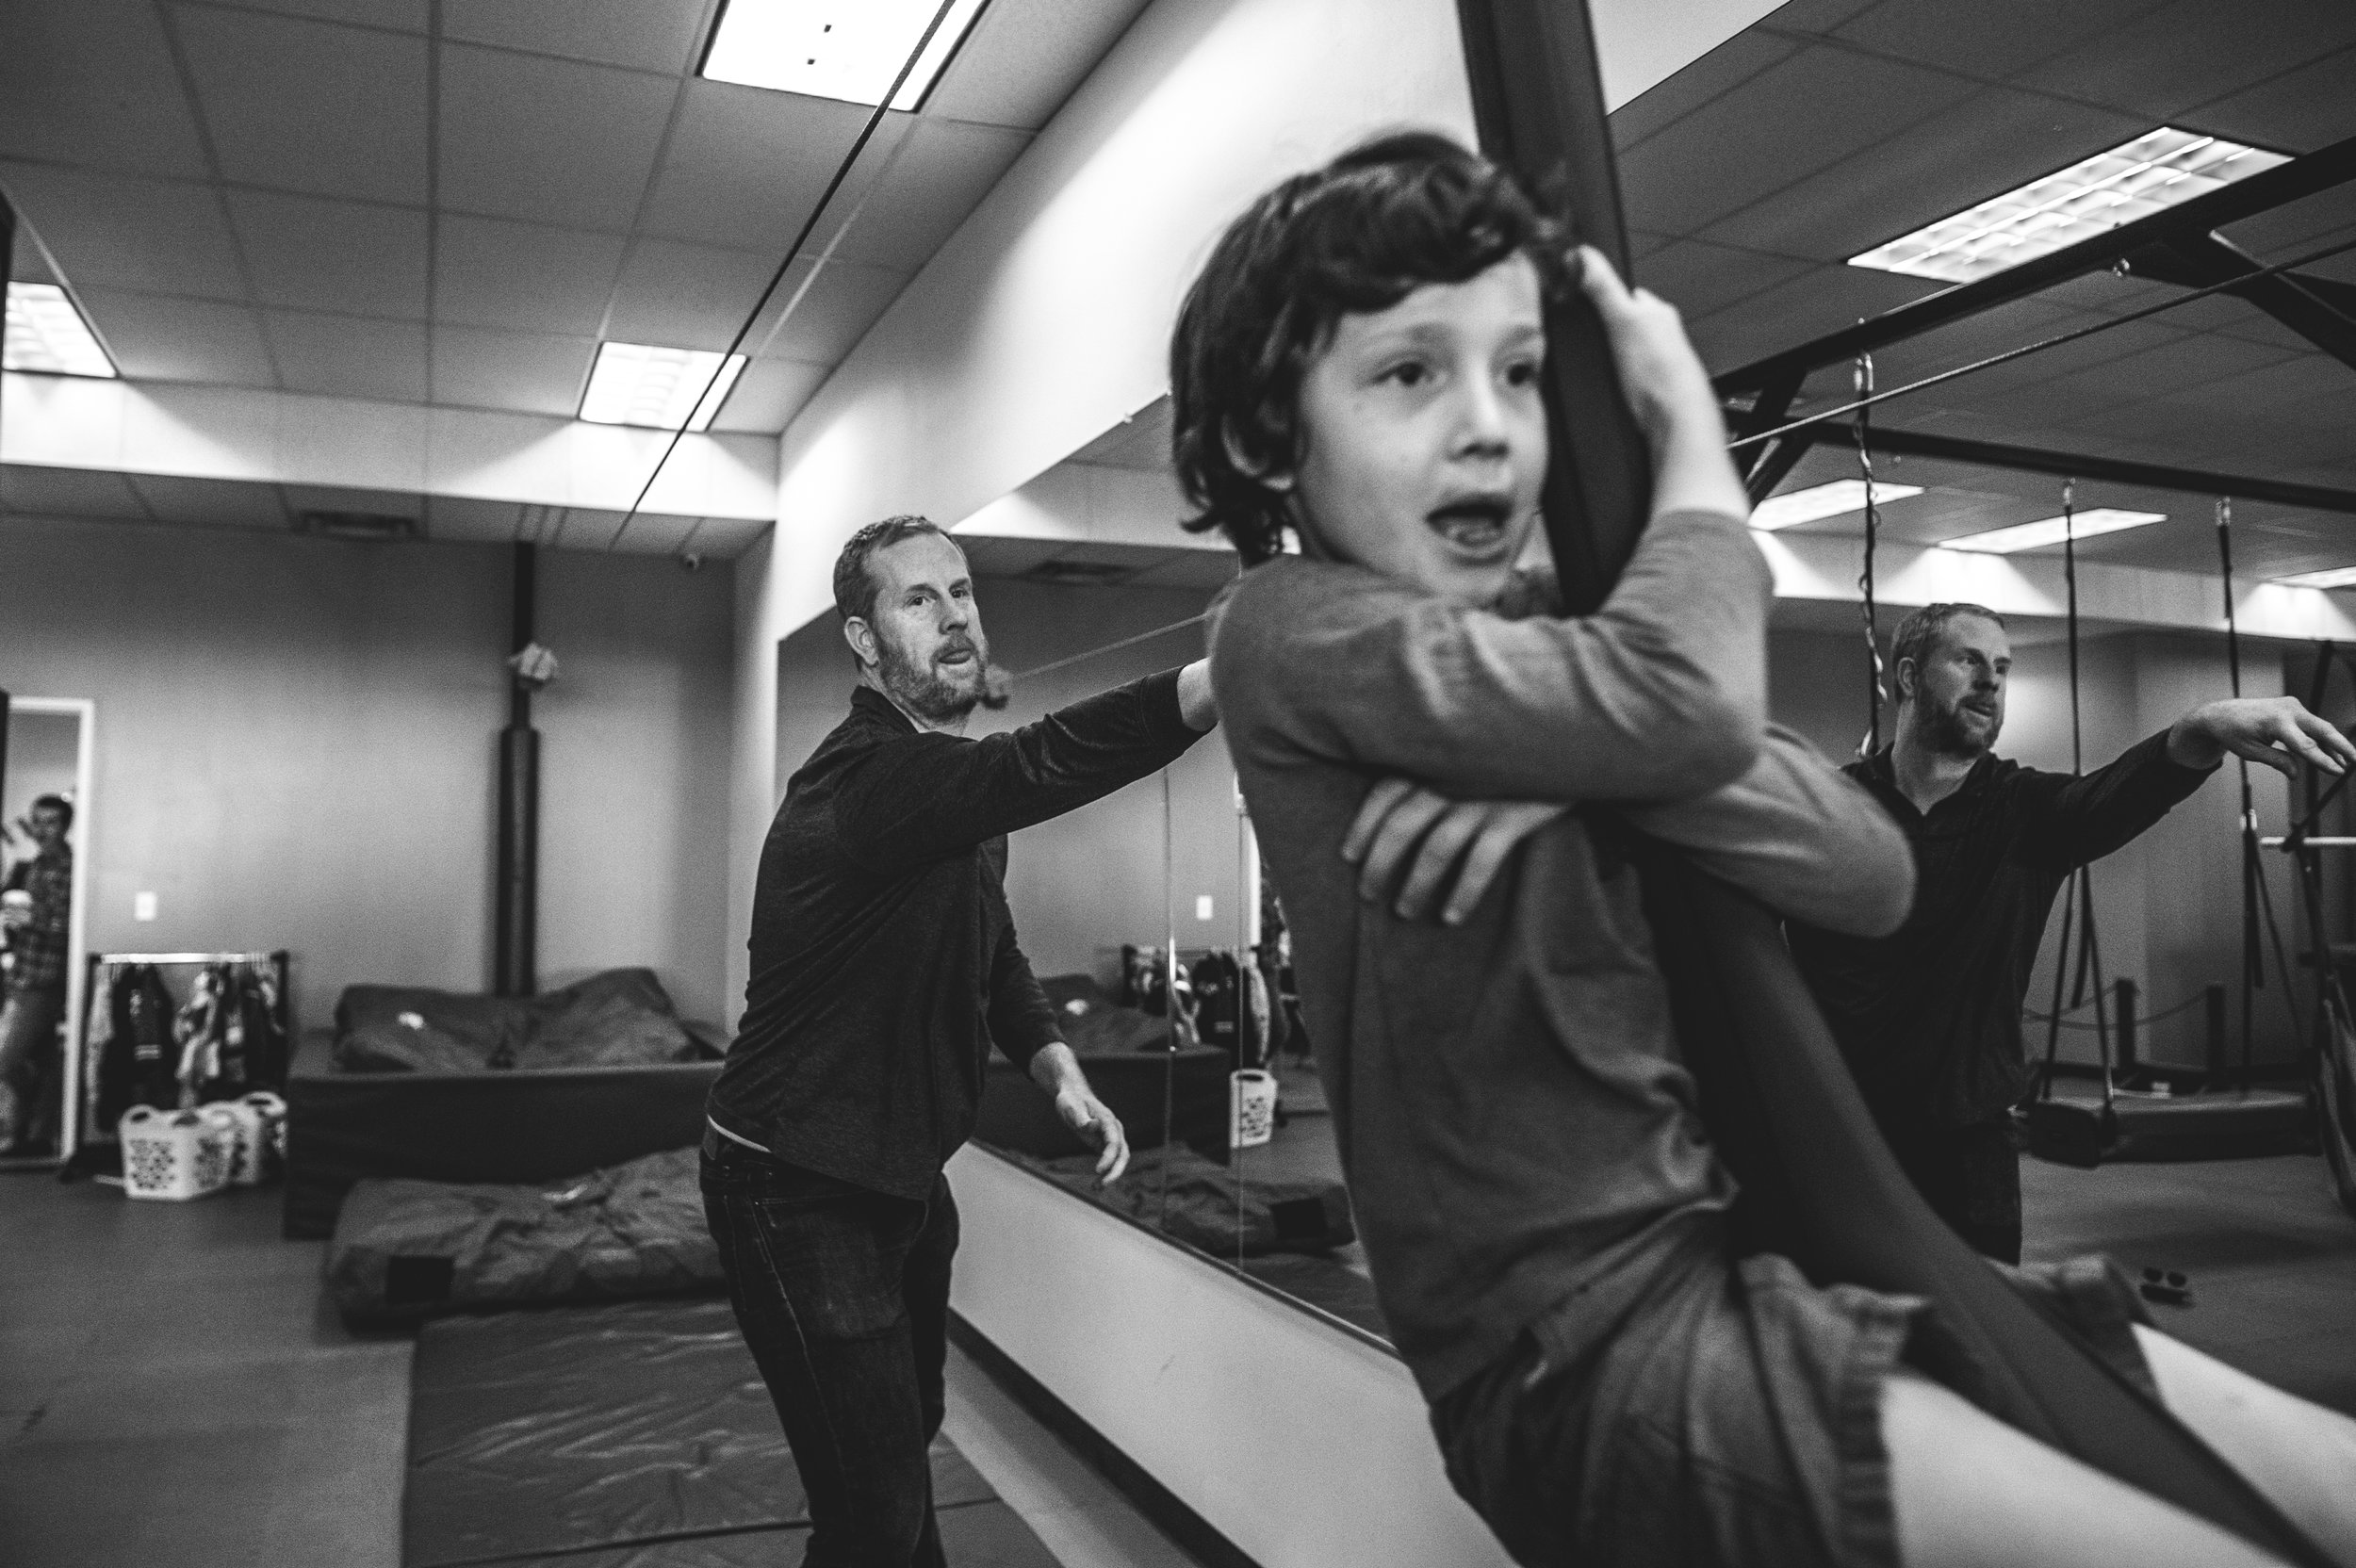 Black and white photo of a father pushing his son on a zipline at the Family Connections kids' gym in Littleton, Colorado